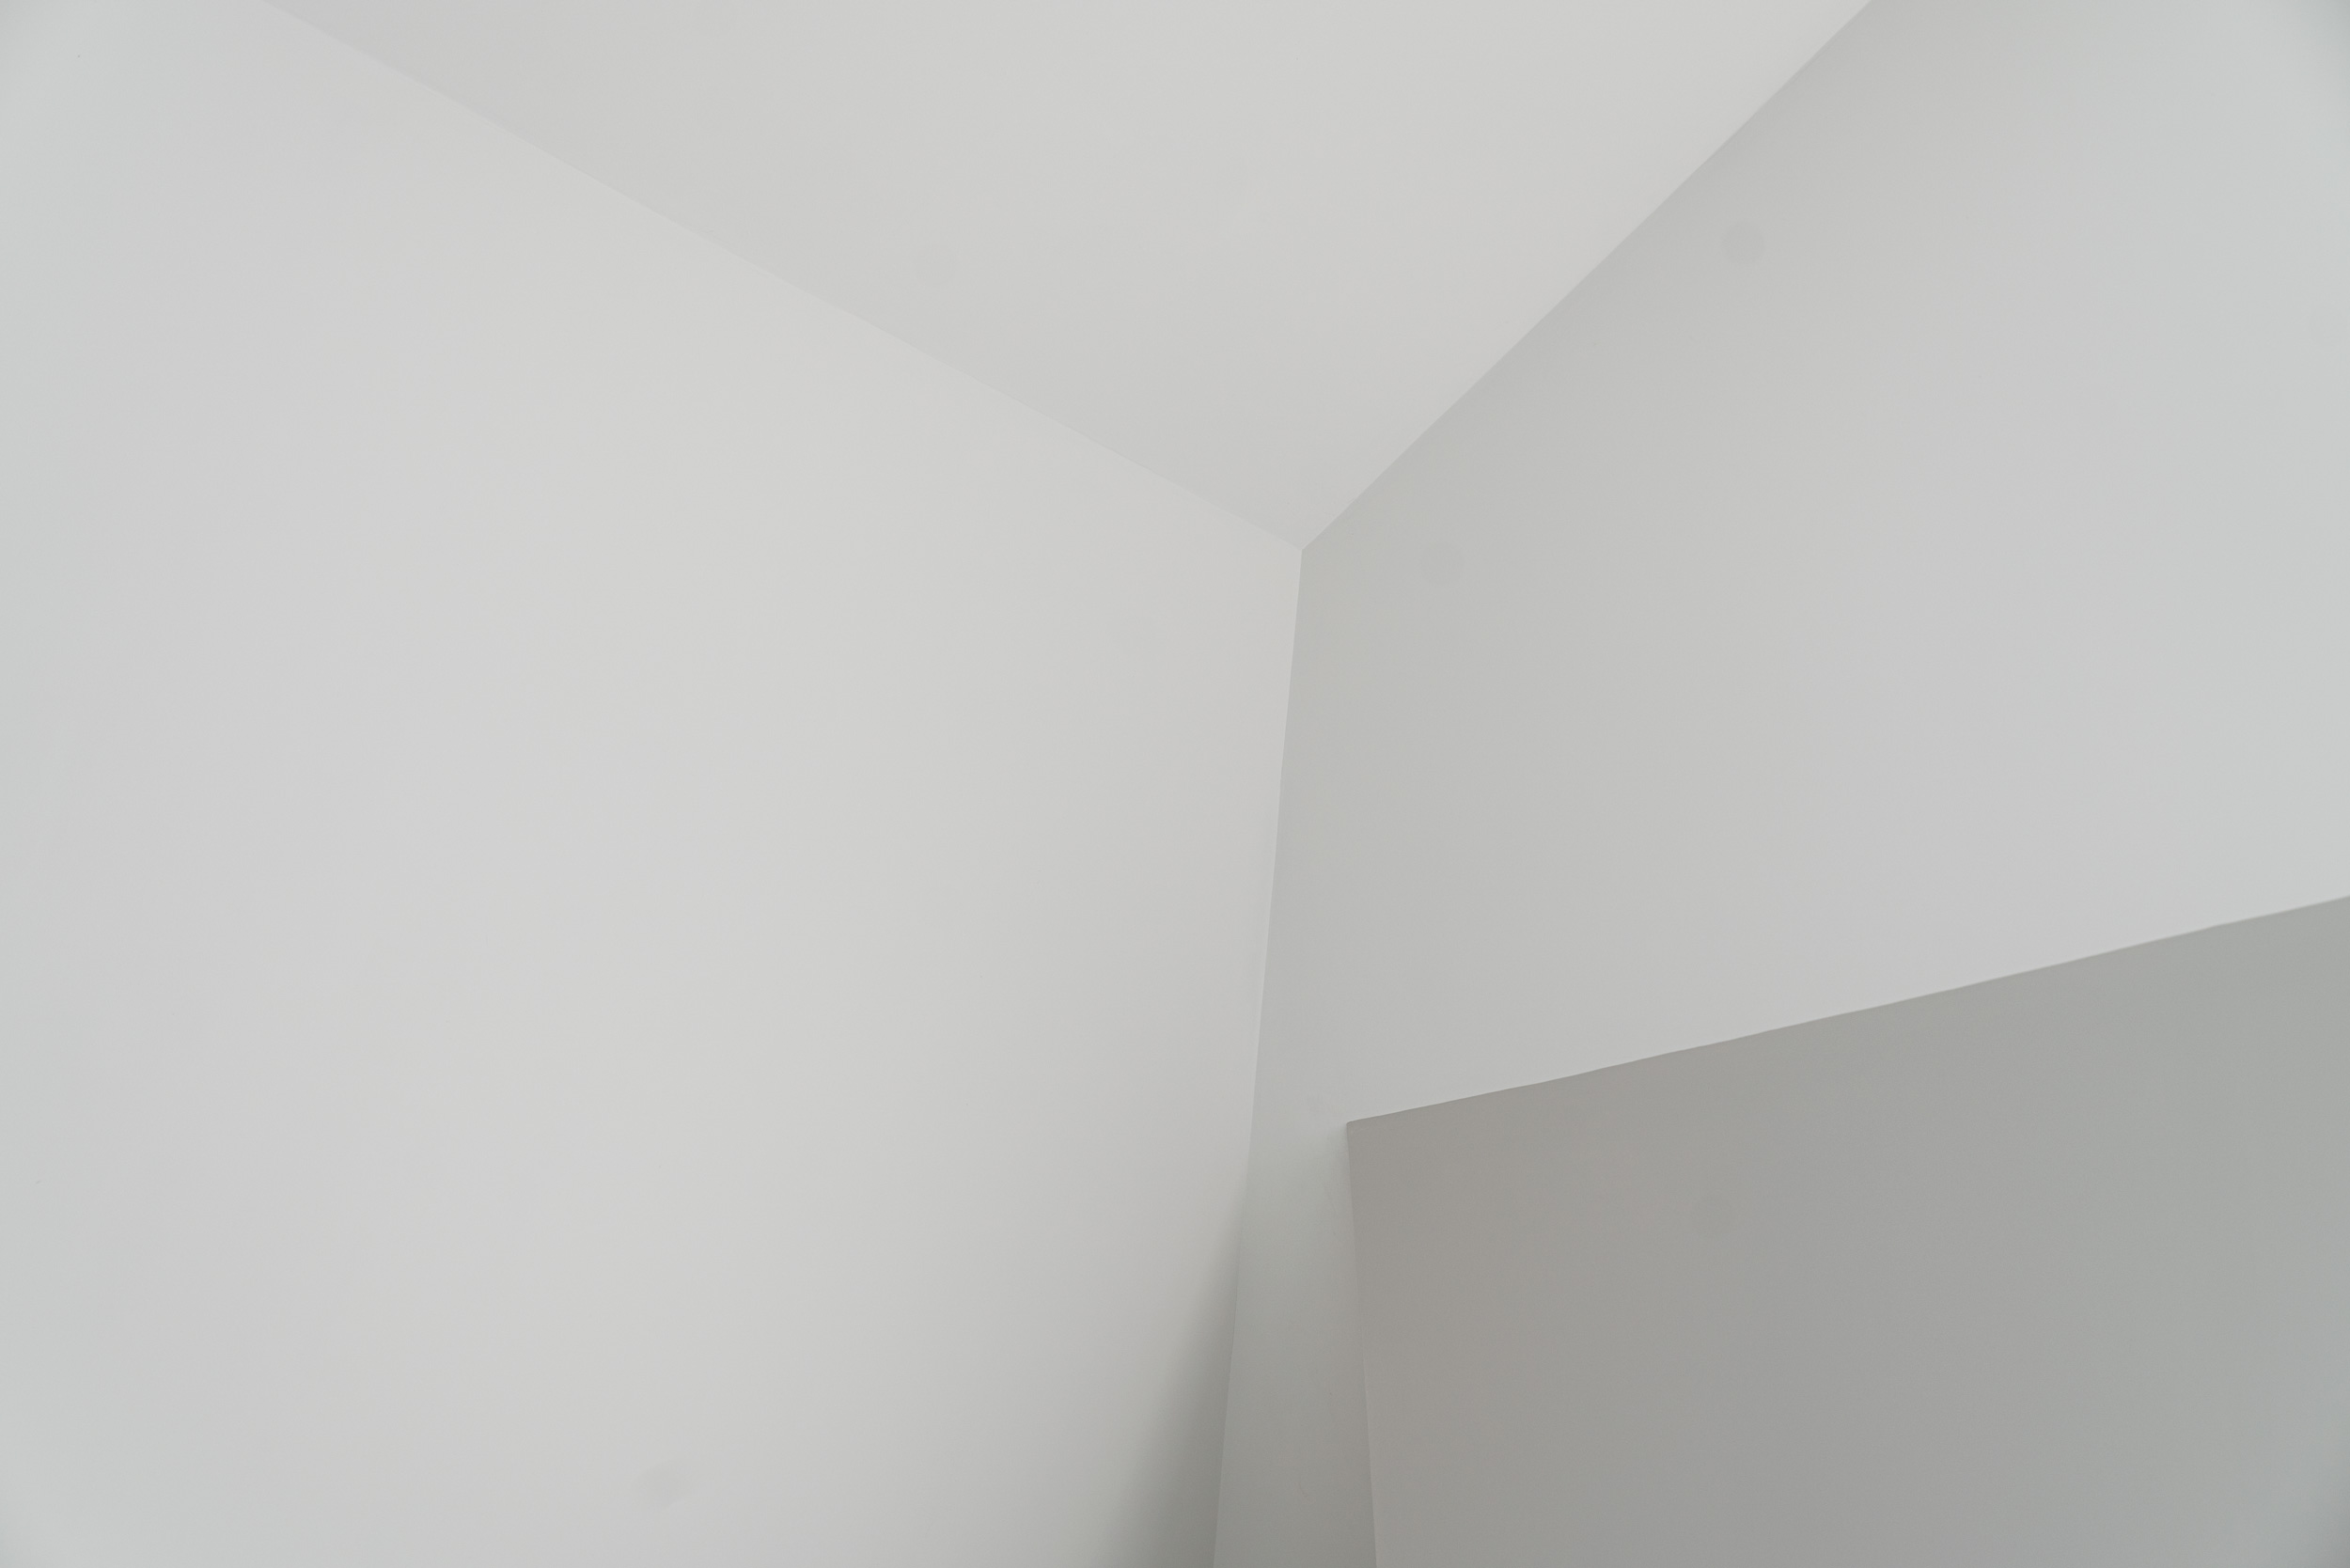 Fiona-Burrage-Lucas-And-Western-Architects-Wymondham-Interiors-Ceiling-Minimal-Norwich-Photographer.jpg